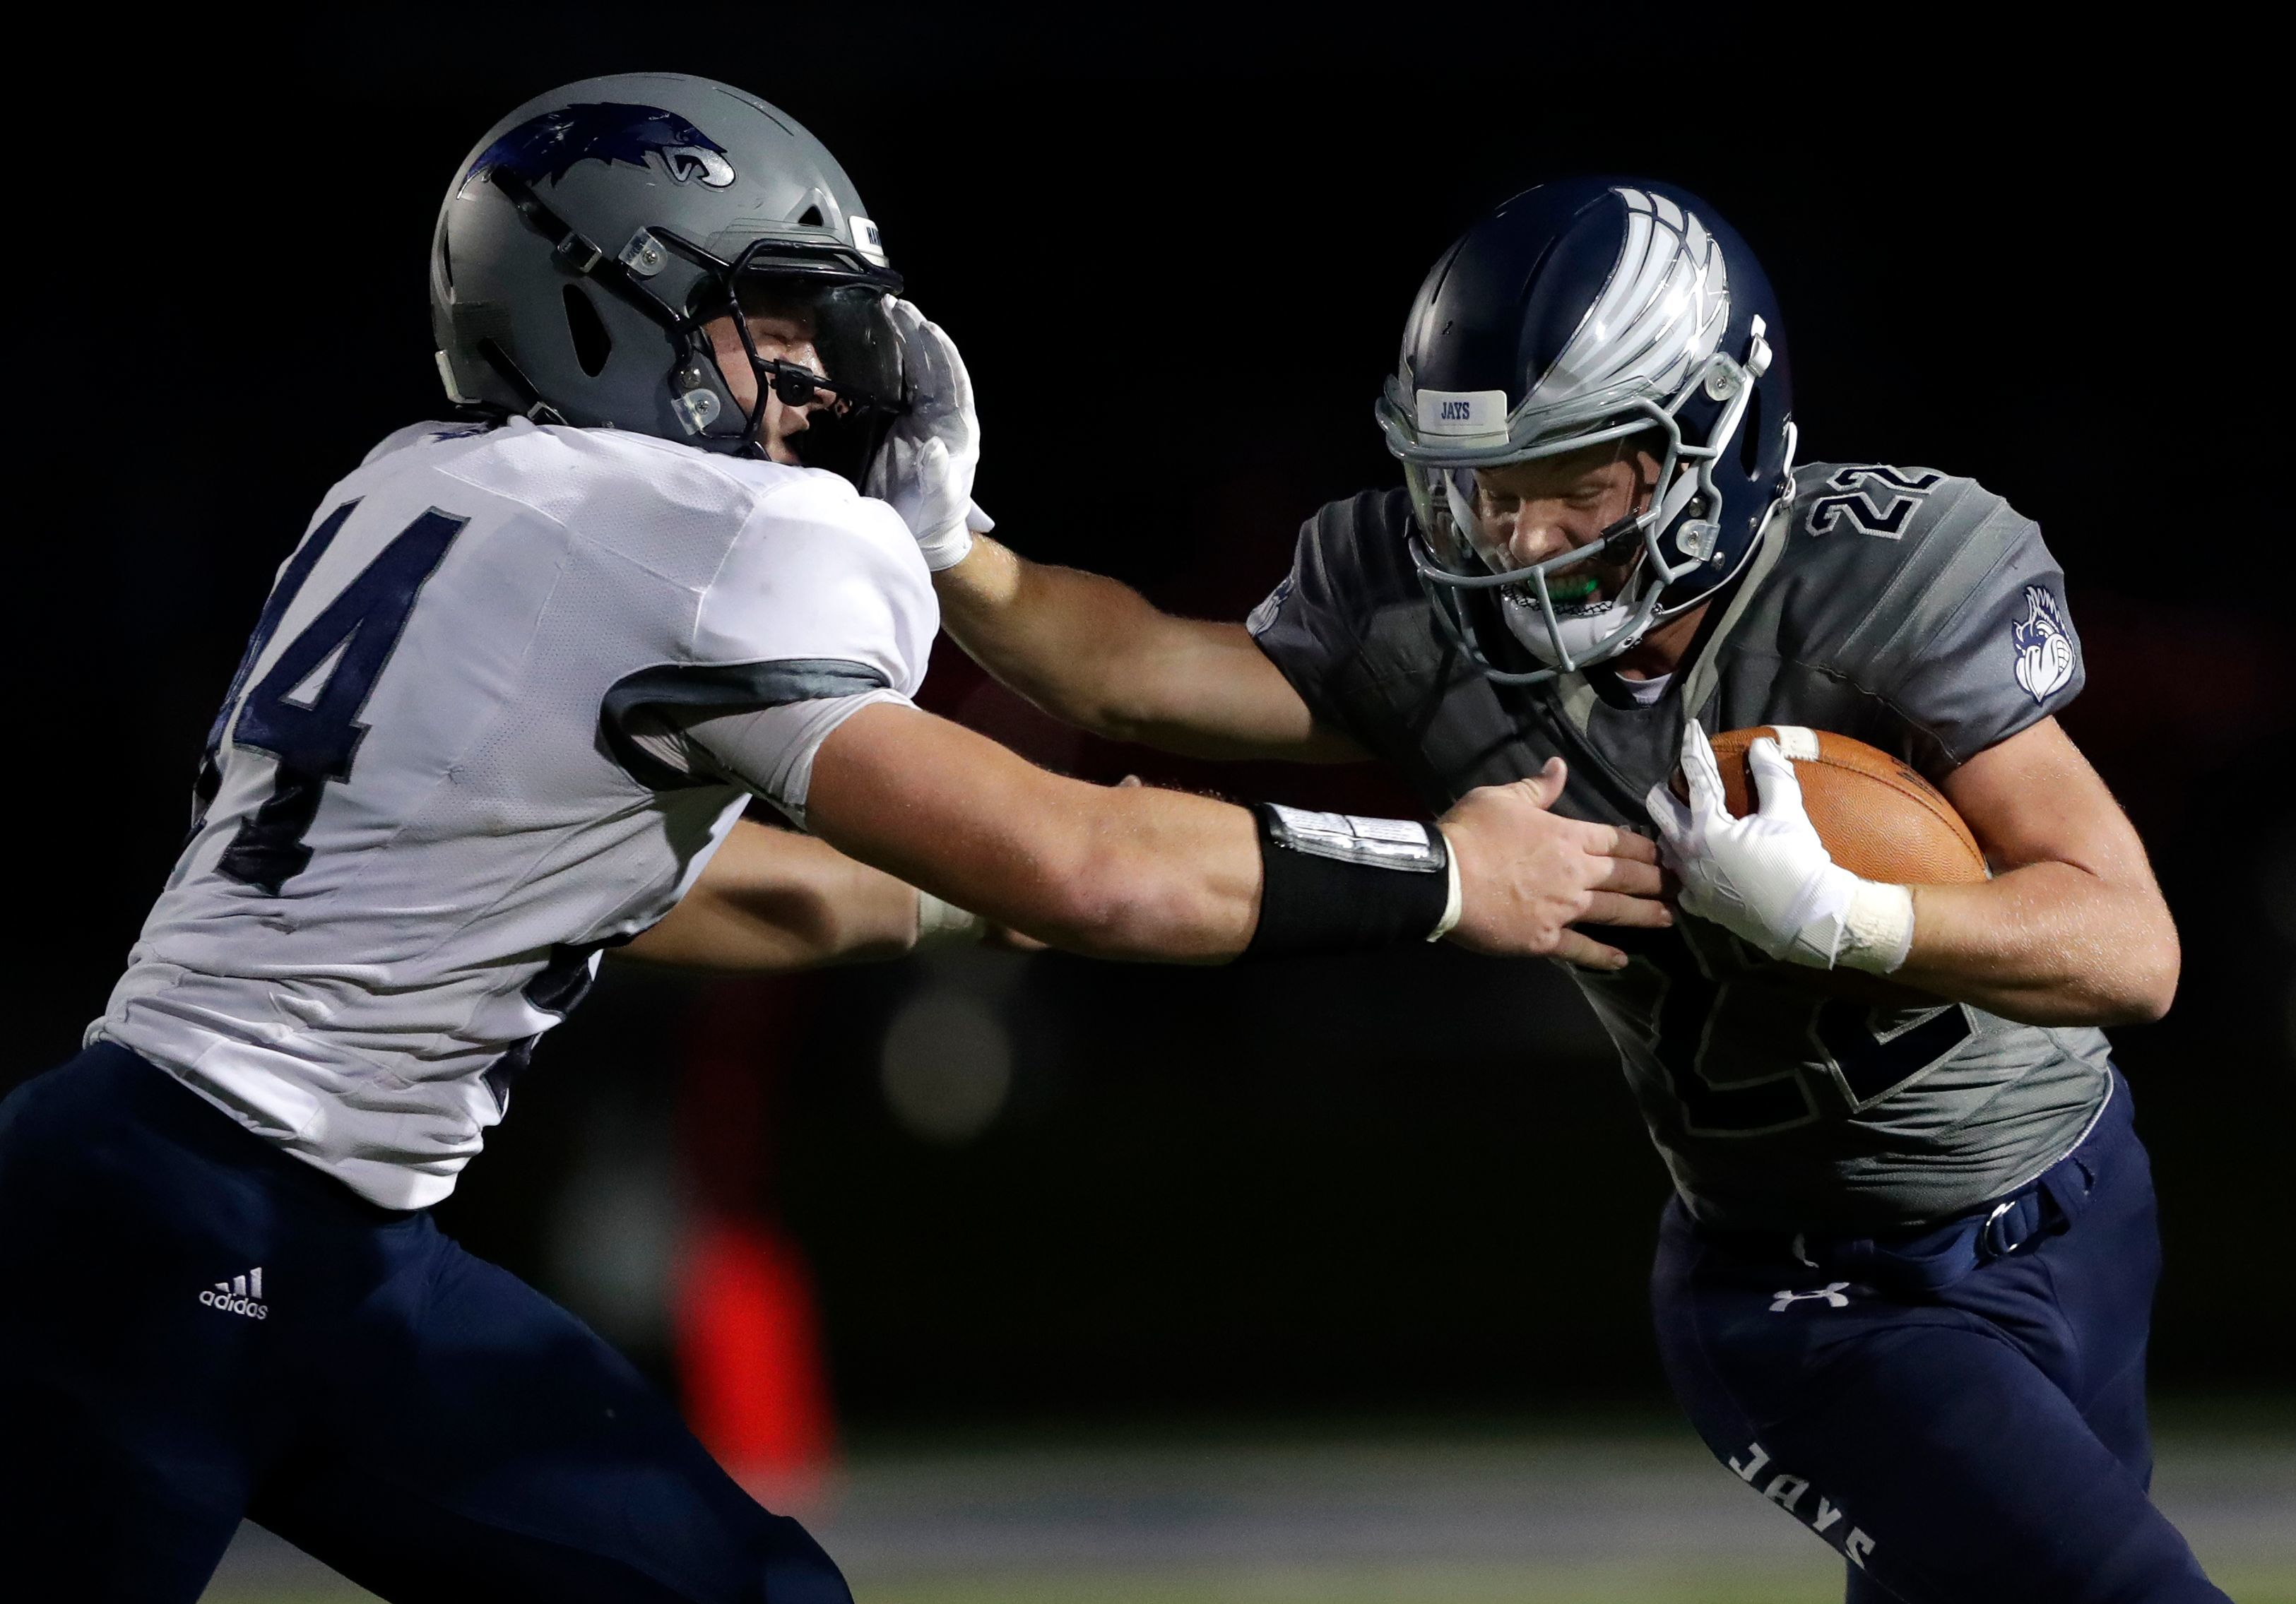 Xavier's Mac Strand, left, tries to bring down Menasha's Tyler Roehl during a Bay Conference football game last season in Menasha.